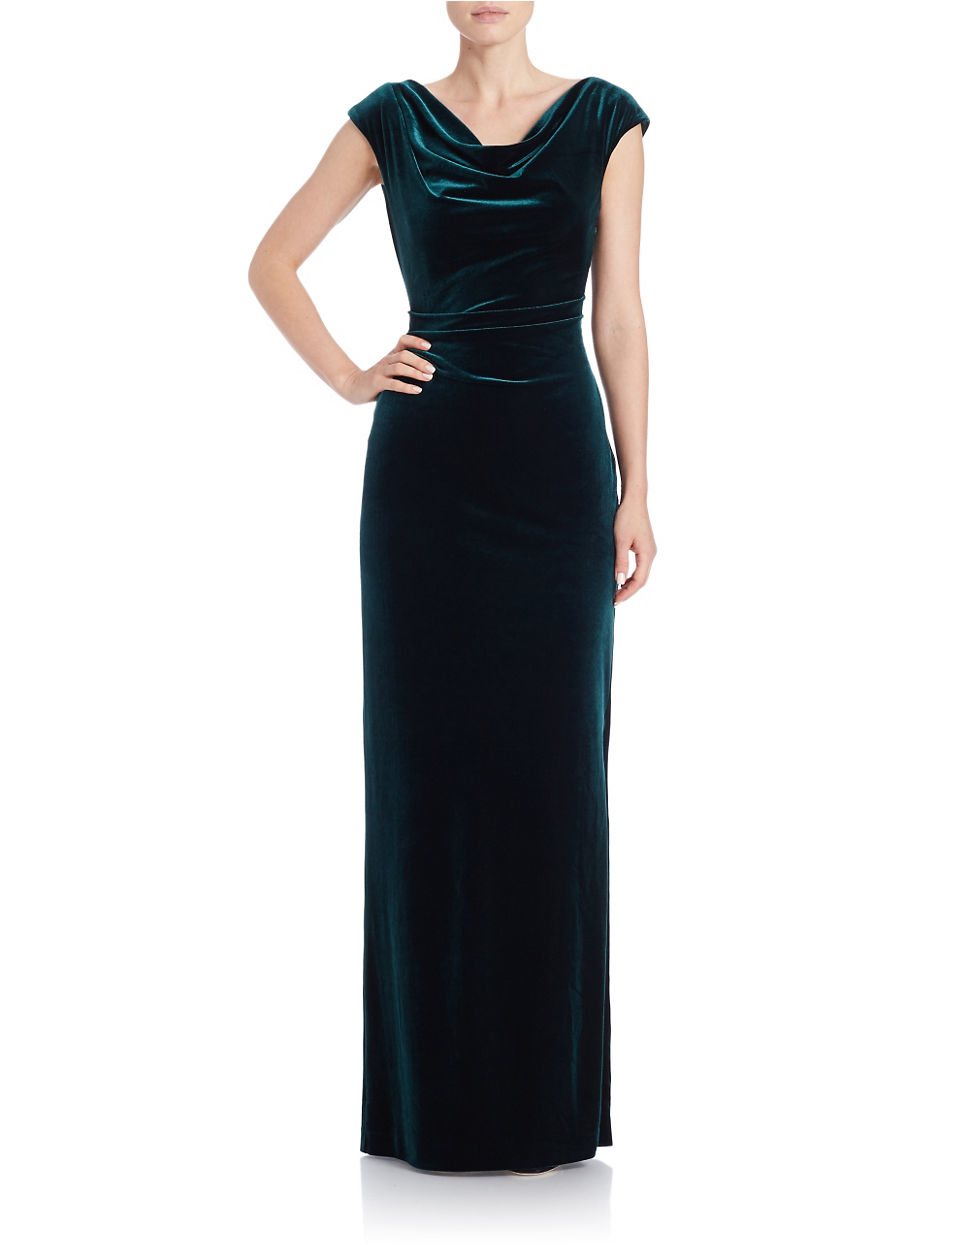 Lyst - Vince Camuto Velvet Cowlneck Gown in Green